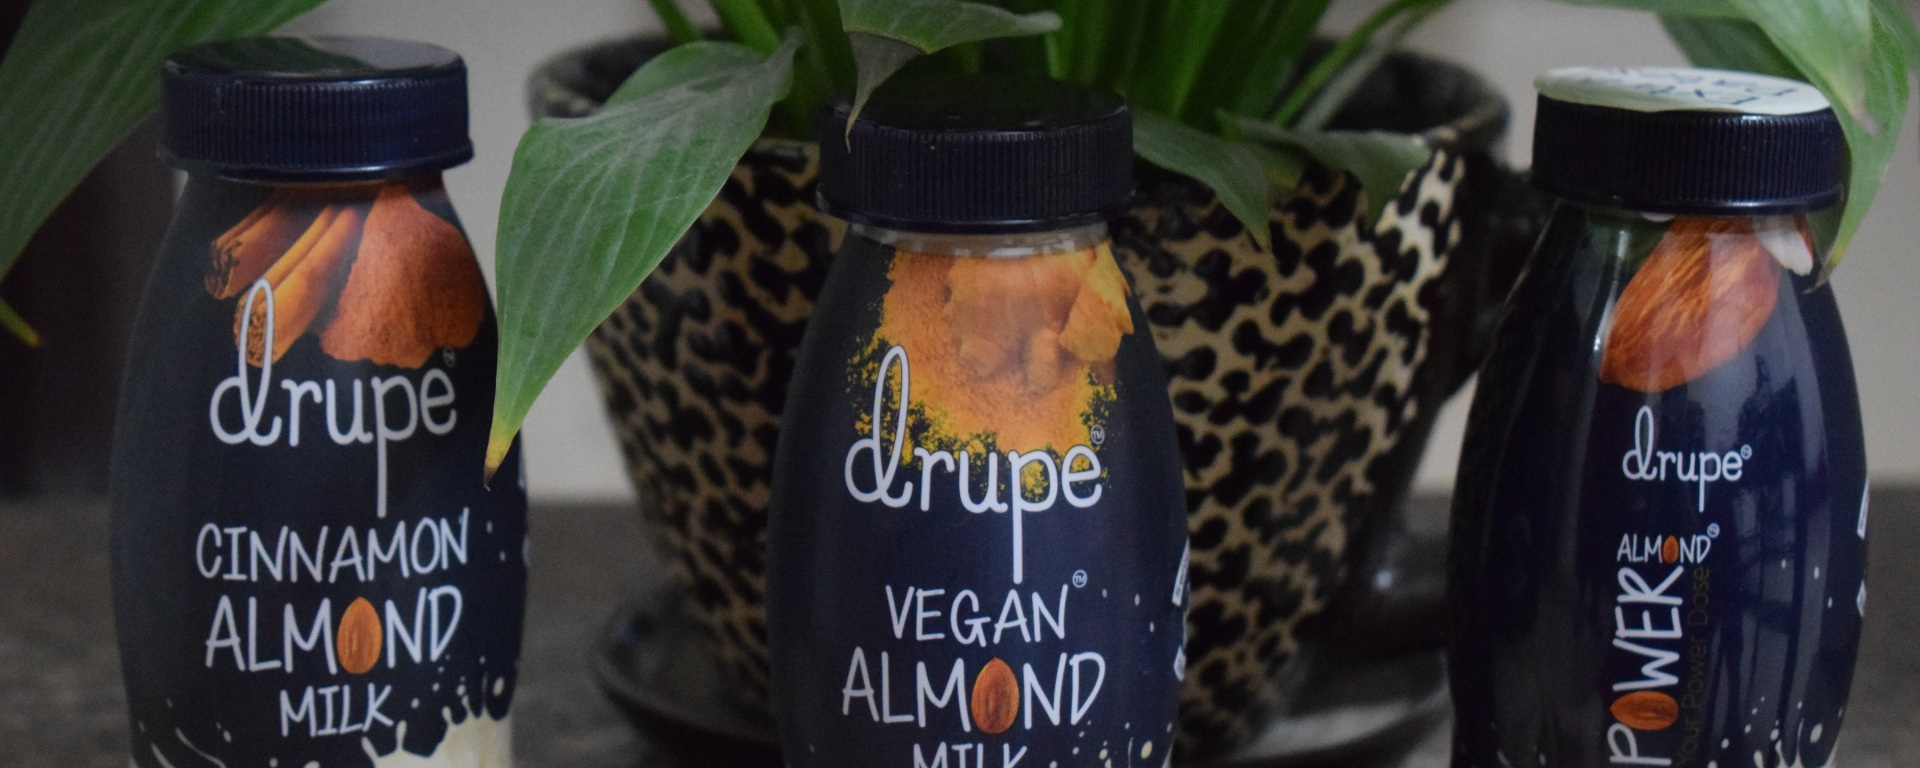 Drupe Almond Milk in three variants--Cinnamon, Golden Power, Extra Dates